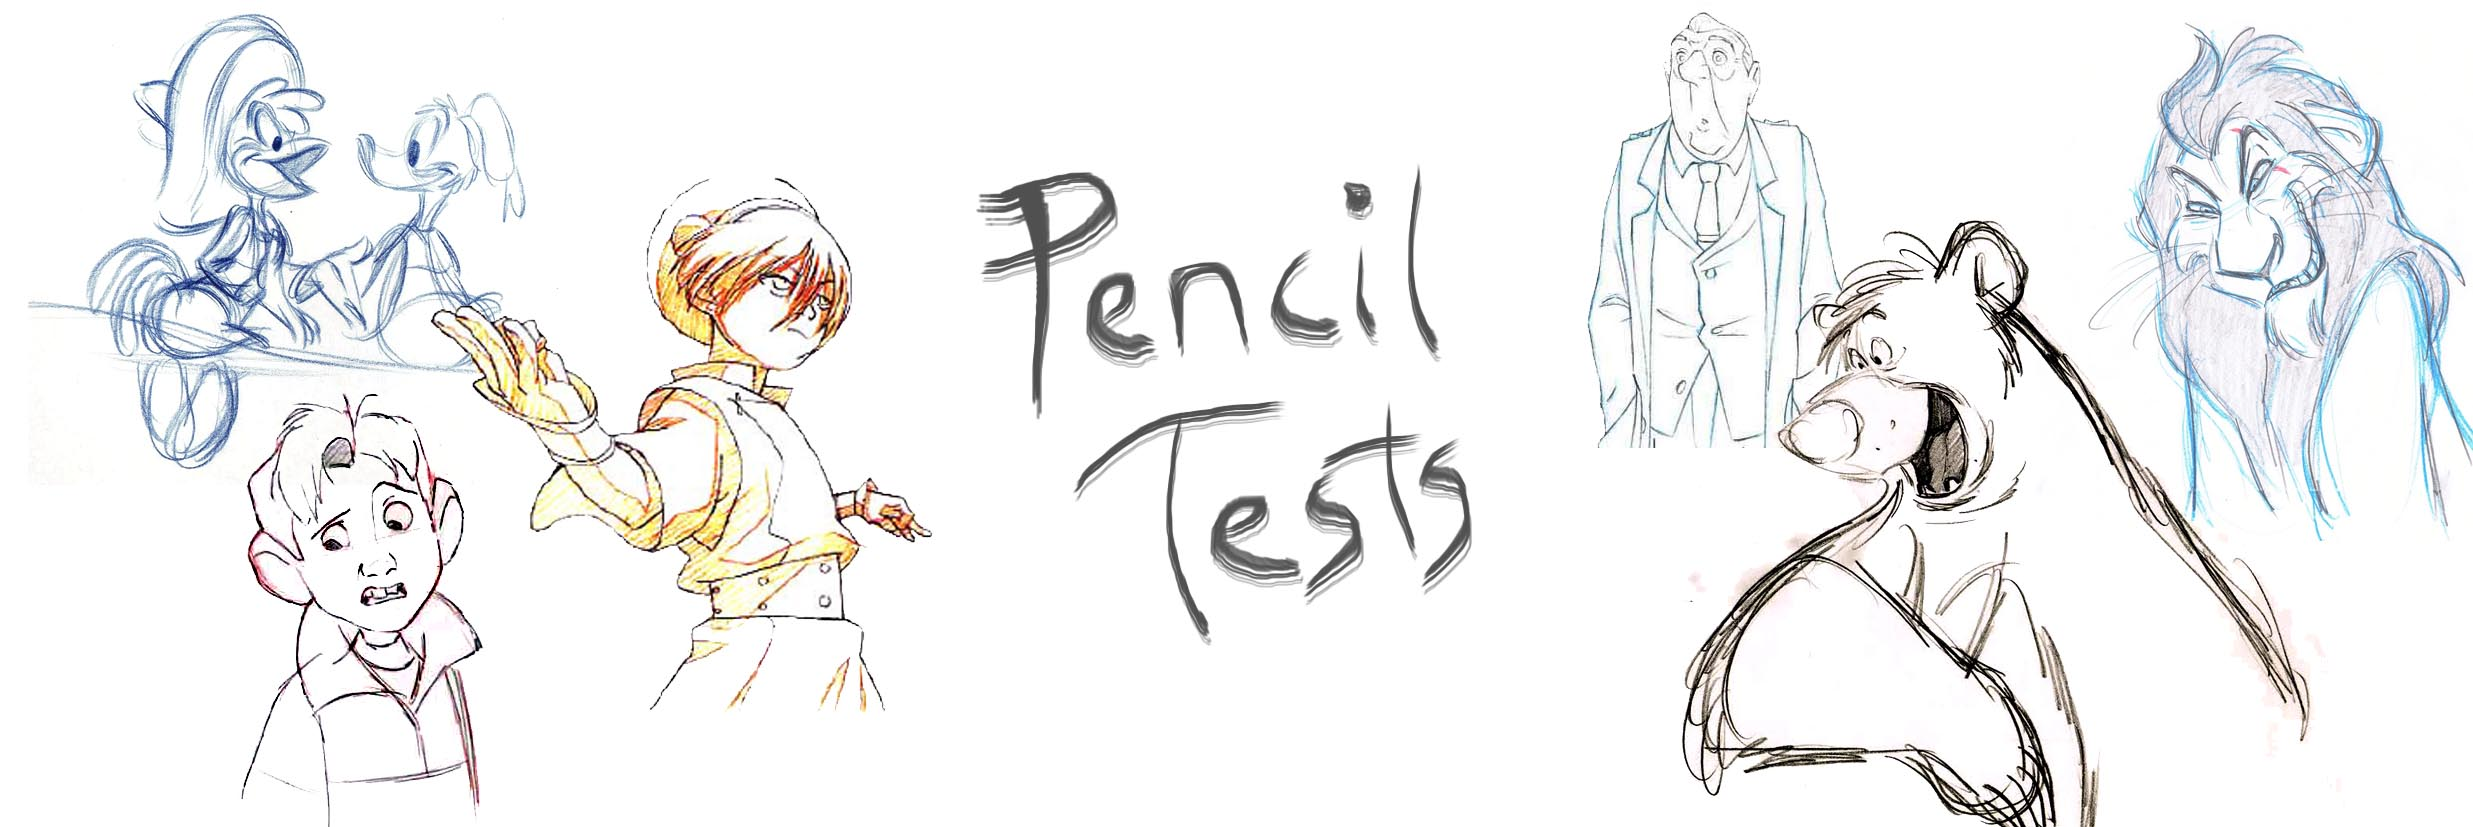 Pencil Tests